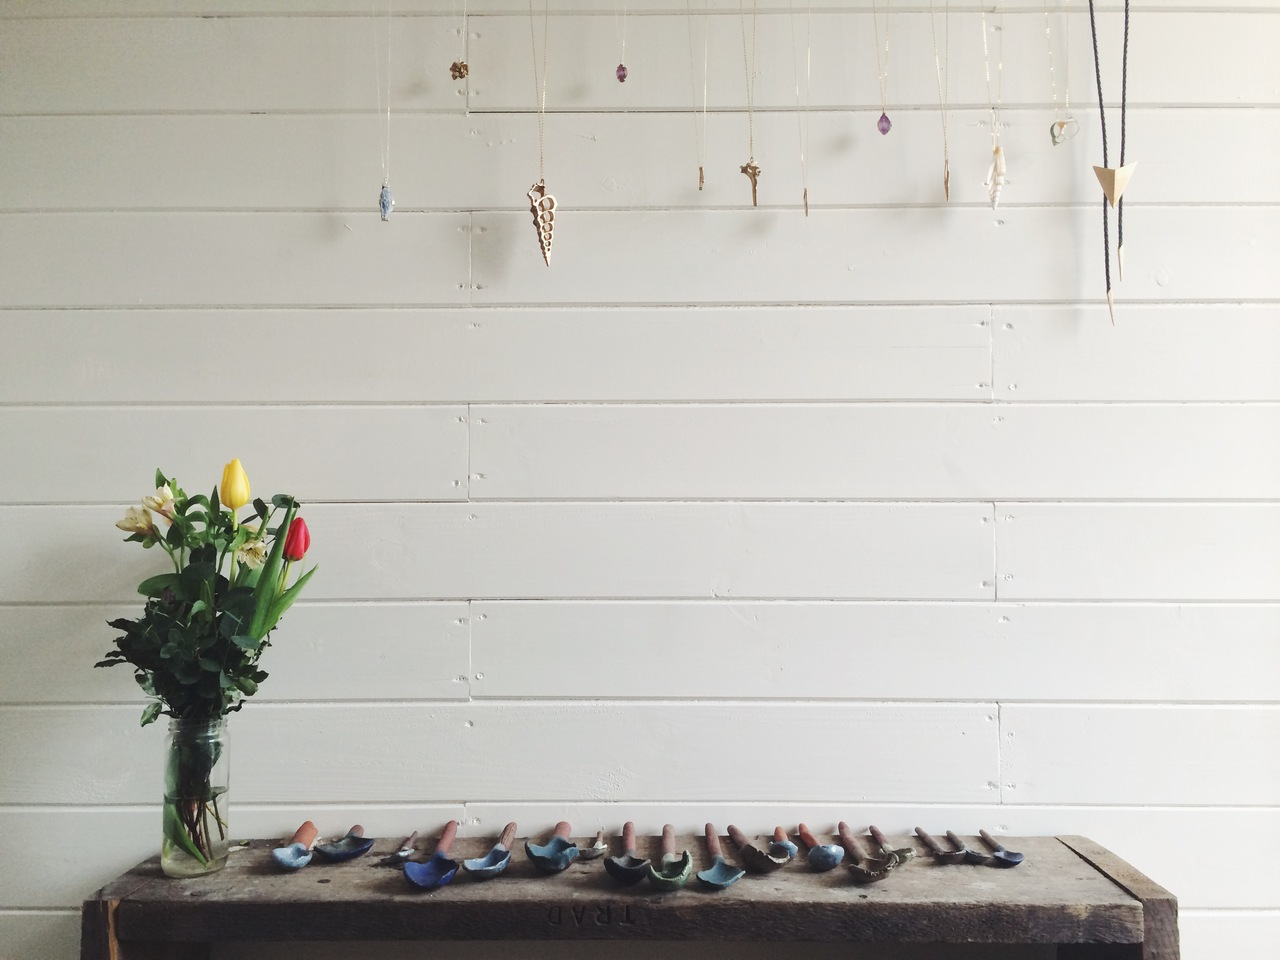 Shop bits: Spoons by Kana., Arrow Necklaces, and British-grown flowers by Cook and Carlsson.